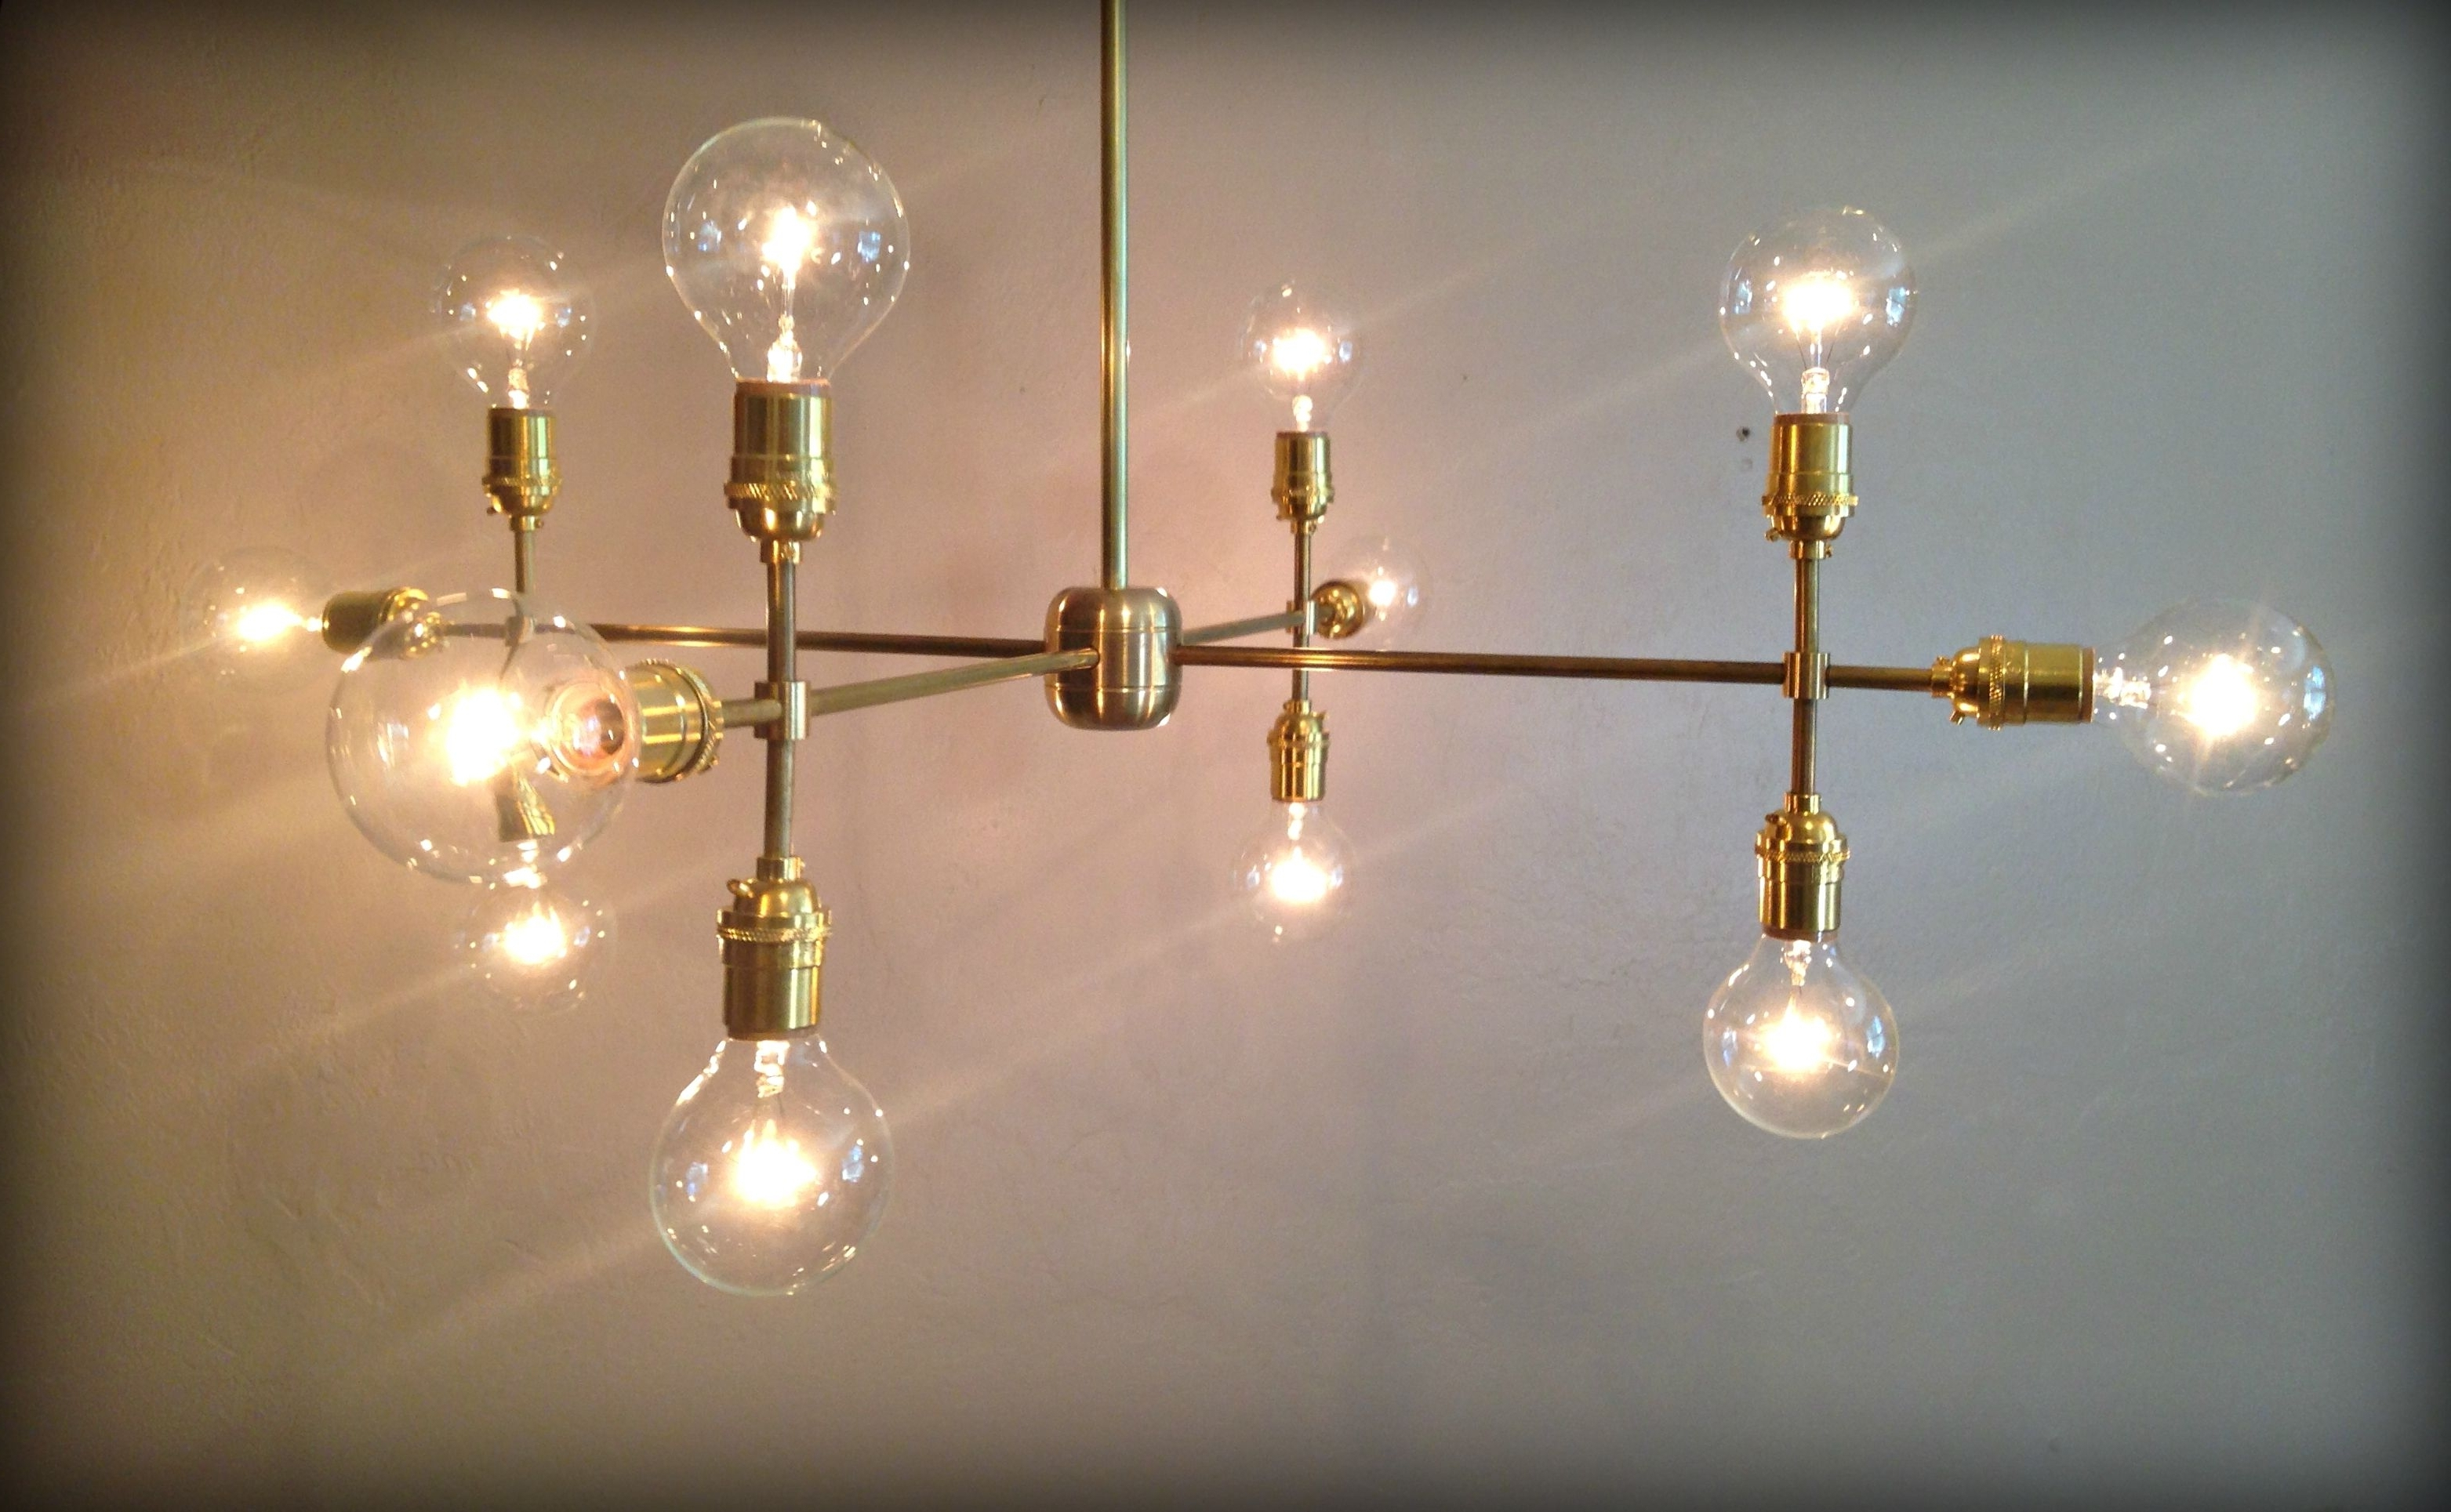 Fashionable Oversized Modern Chandeliers – Chandelier Designs Pertaining To Lucinda Branch Chandelier (View 13 of 15)